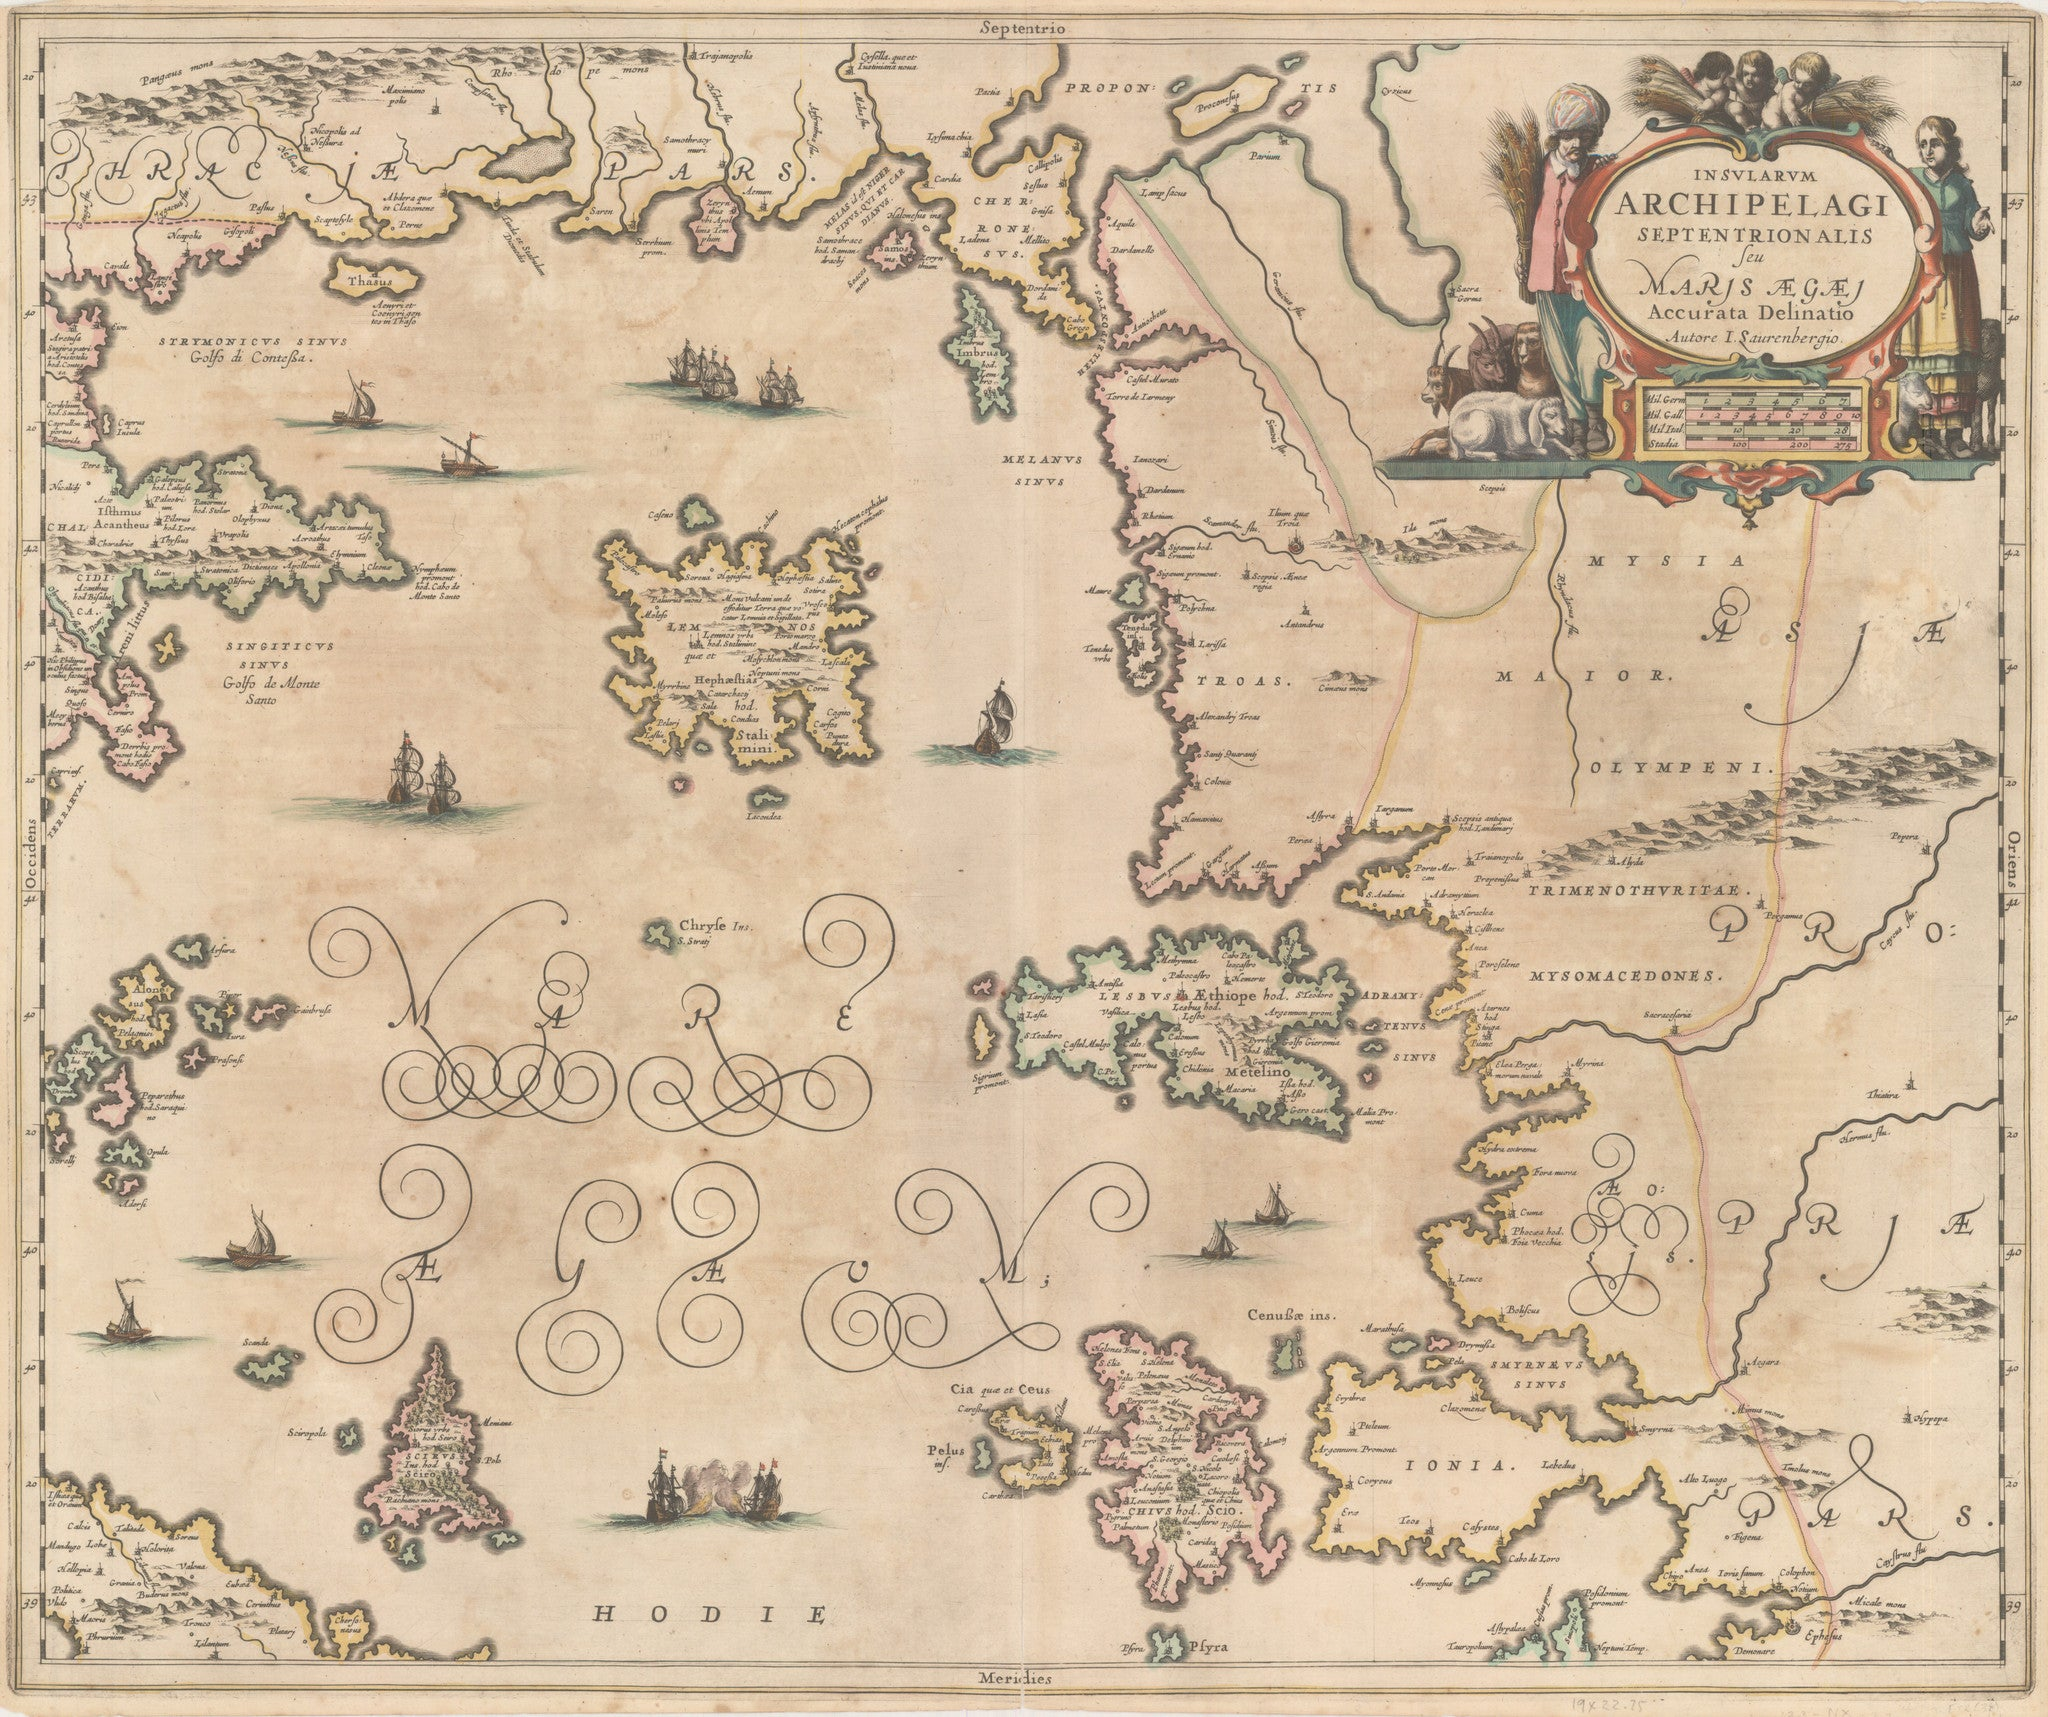 nwcartographic.com: Antique Map of Greece - Insularum Archipelagi Septentrion Alis Seu Maris Aegaei  By: Jansson Date: 1650